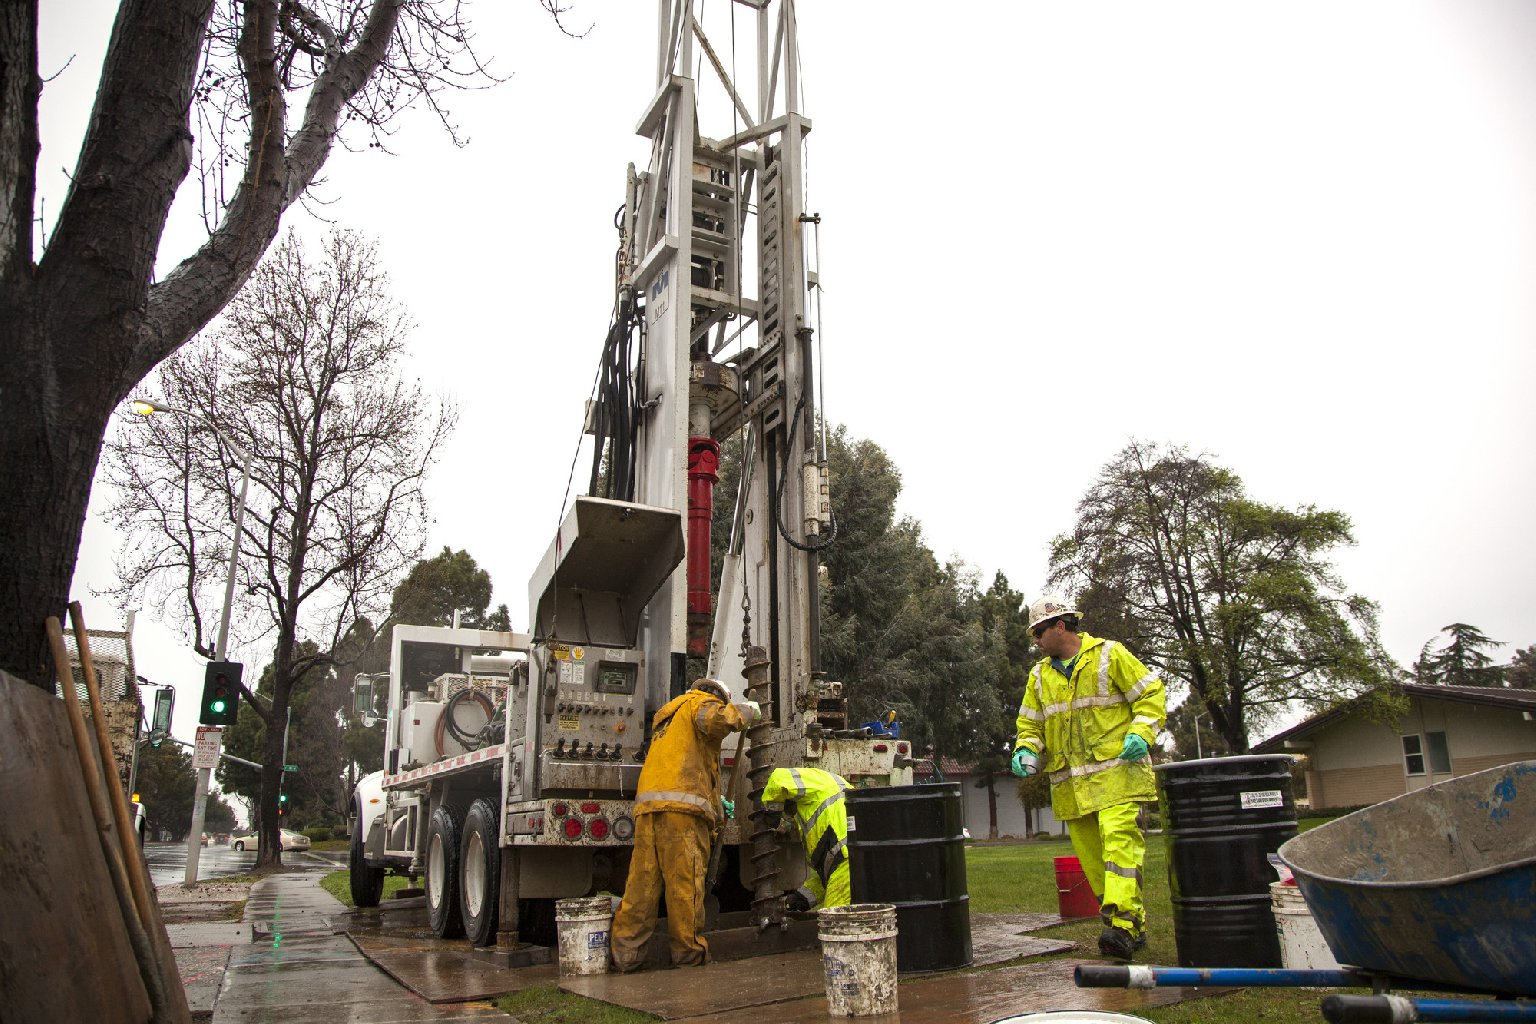 California Fuel Leak Cleanup Rules Leave Lingering Spills to Nature